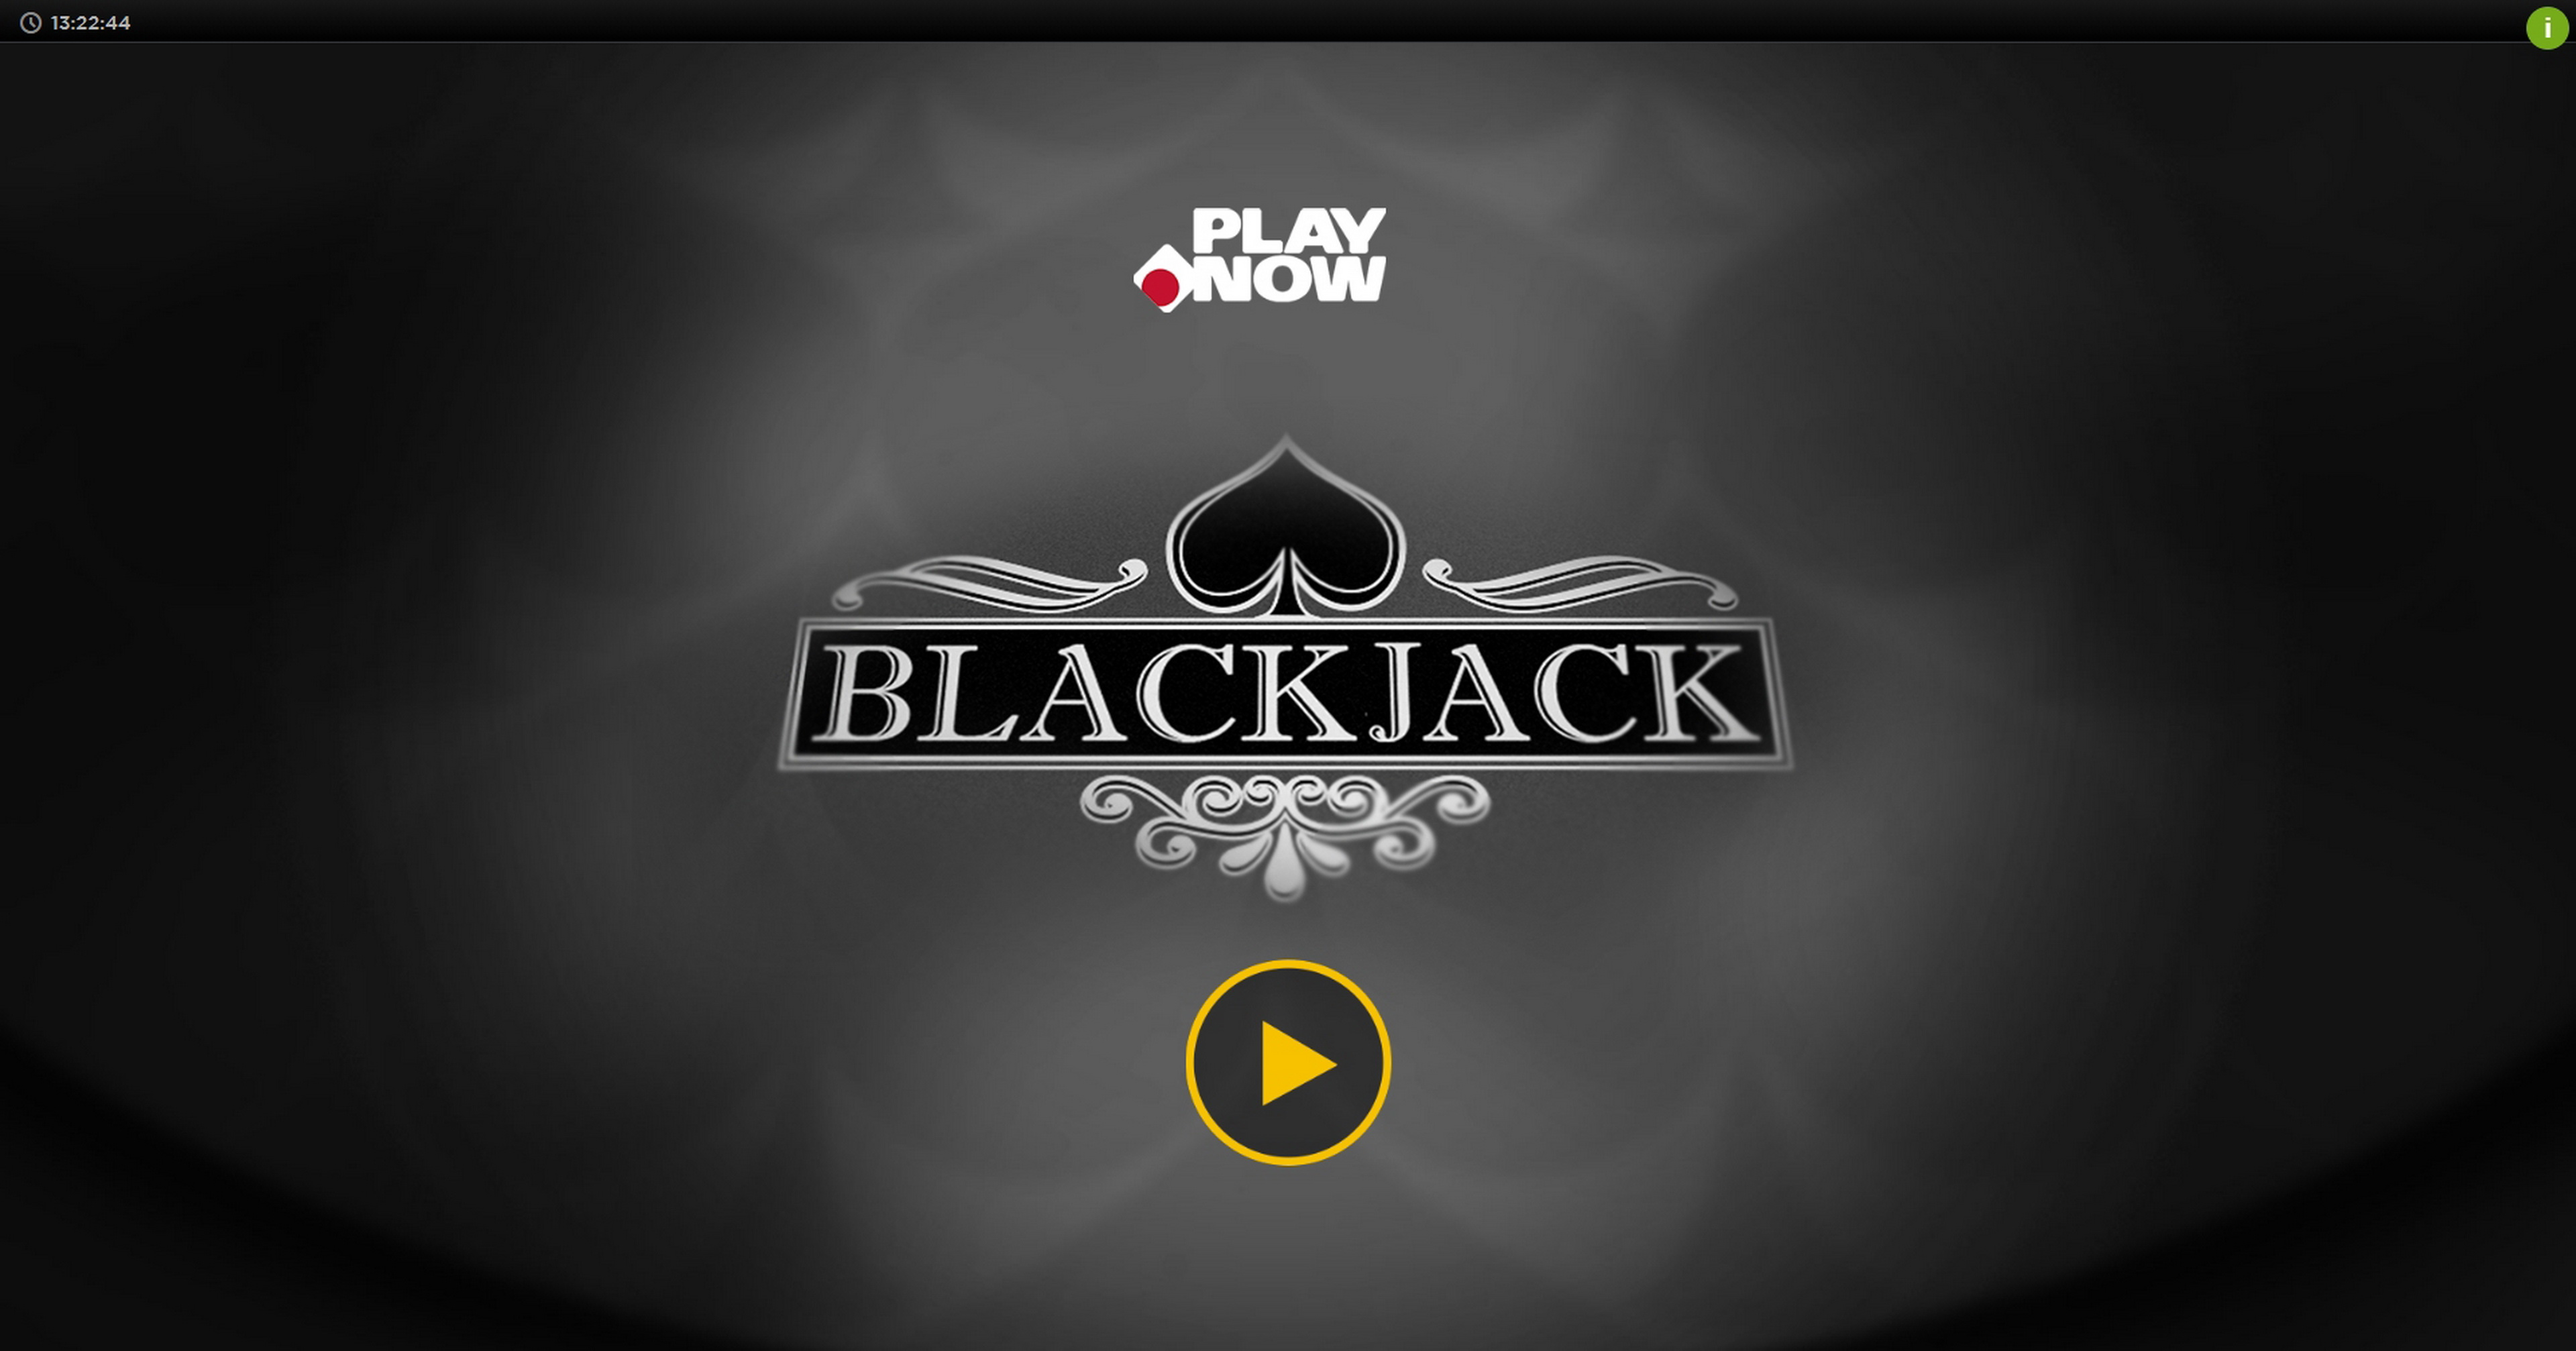 Play 3 Hand Blackjack (HungryBear) Free Casino Slot Game by HungryBear